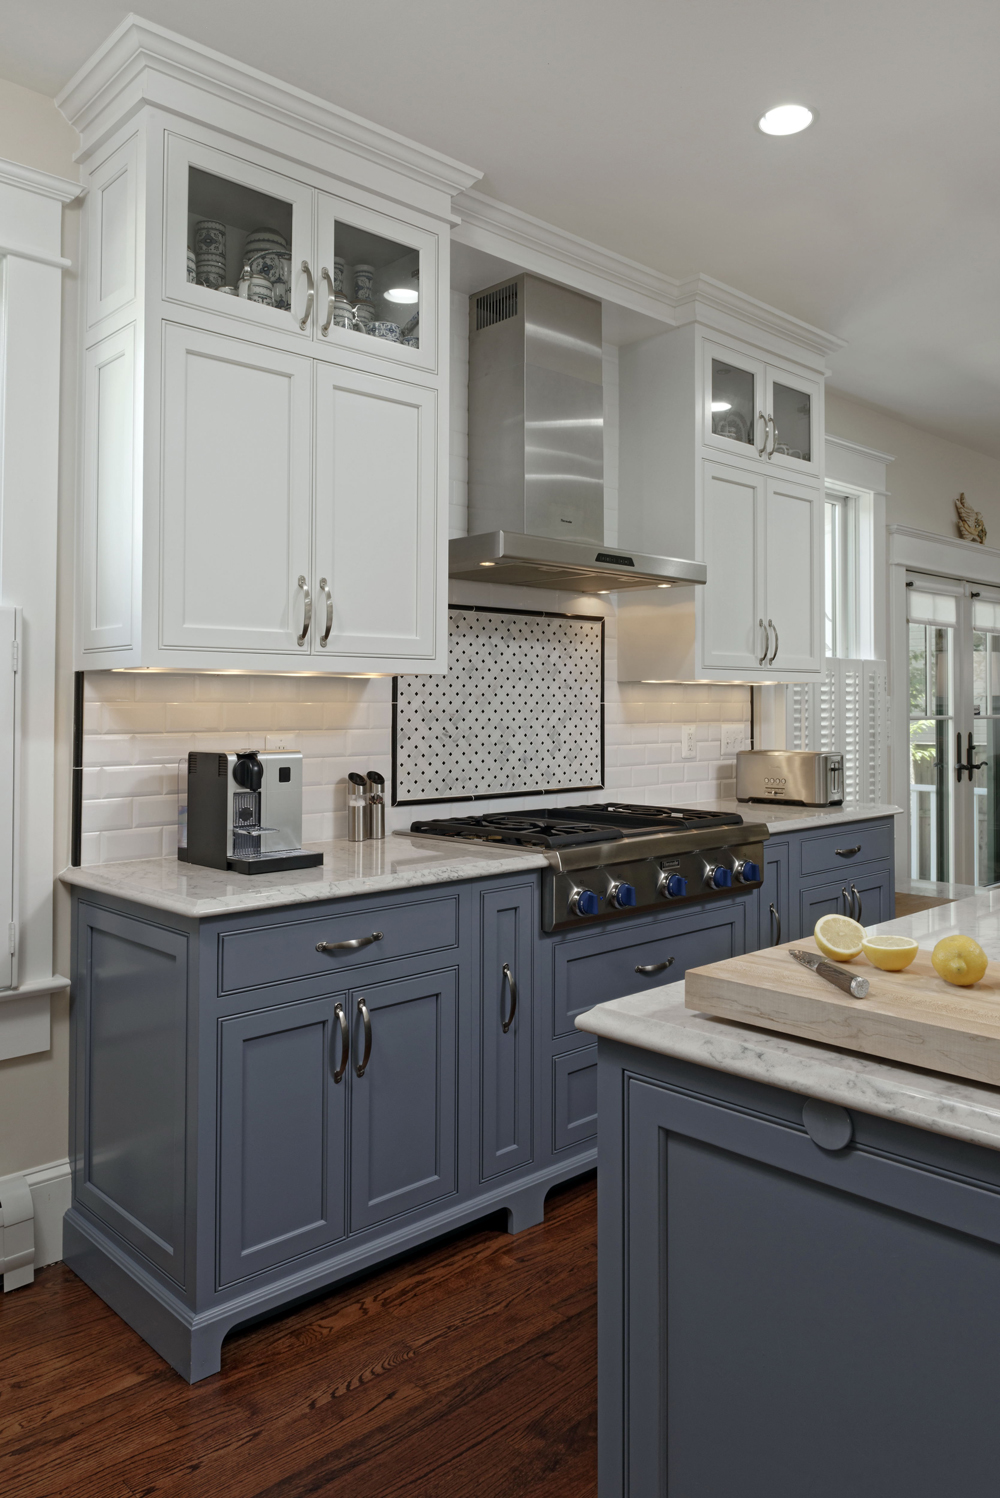 Kitchens Breakfast Amp Dining Rooms Photo Gallery Bowa Design Build Remodeling